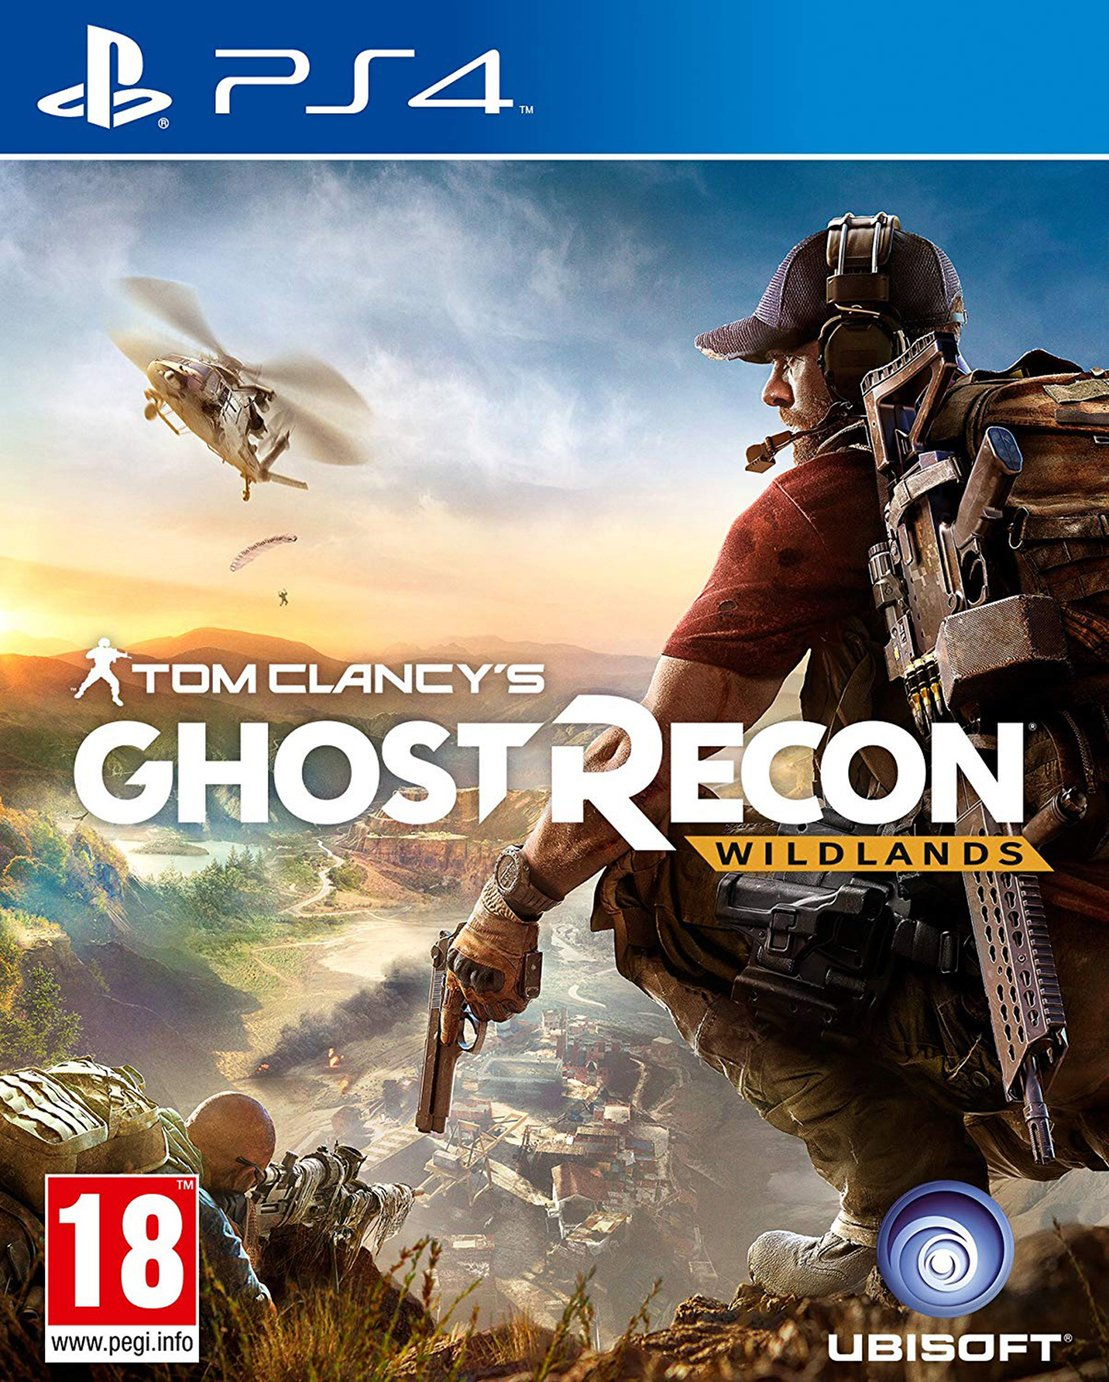 Tom Clancy's Ghost Recon: Wildlands PS4 Game